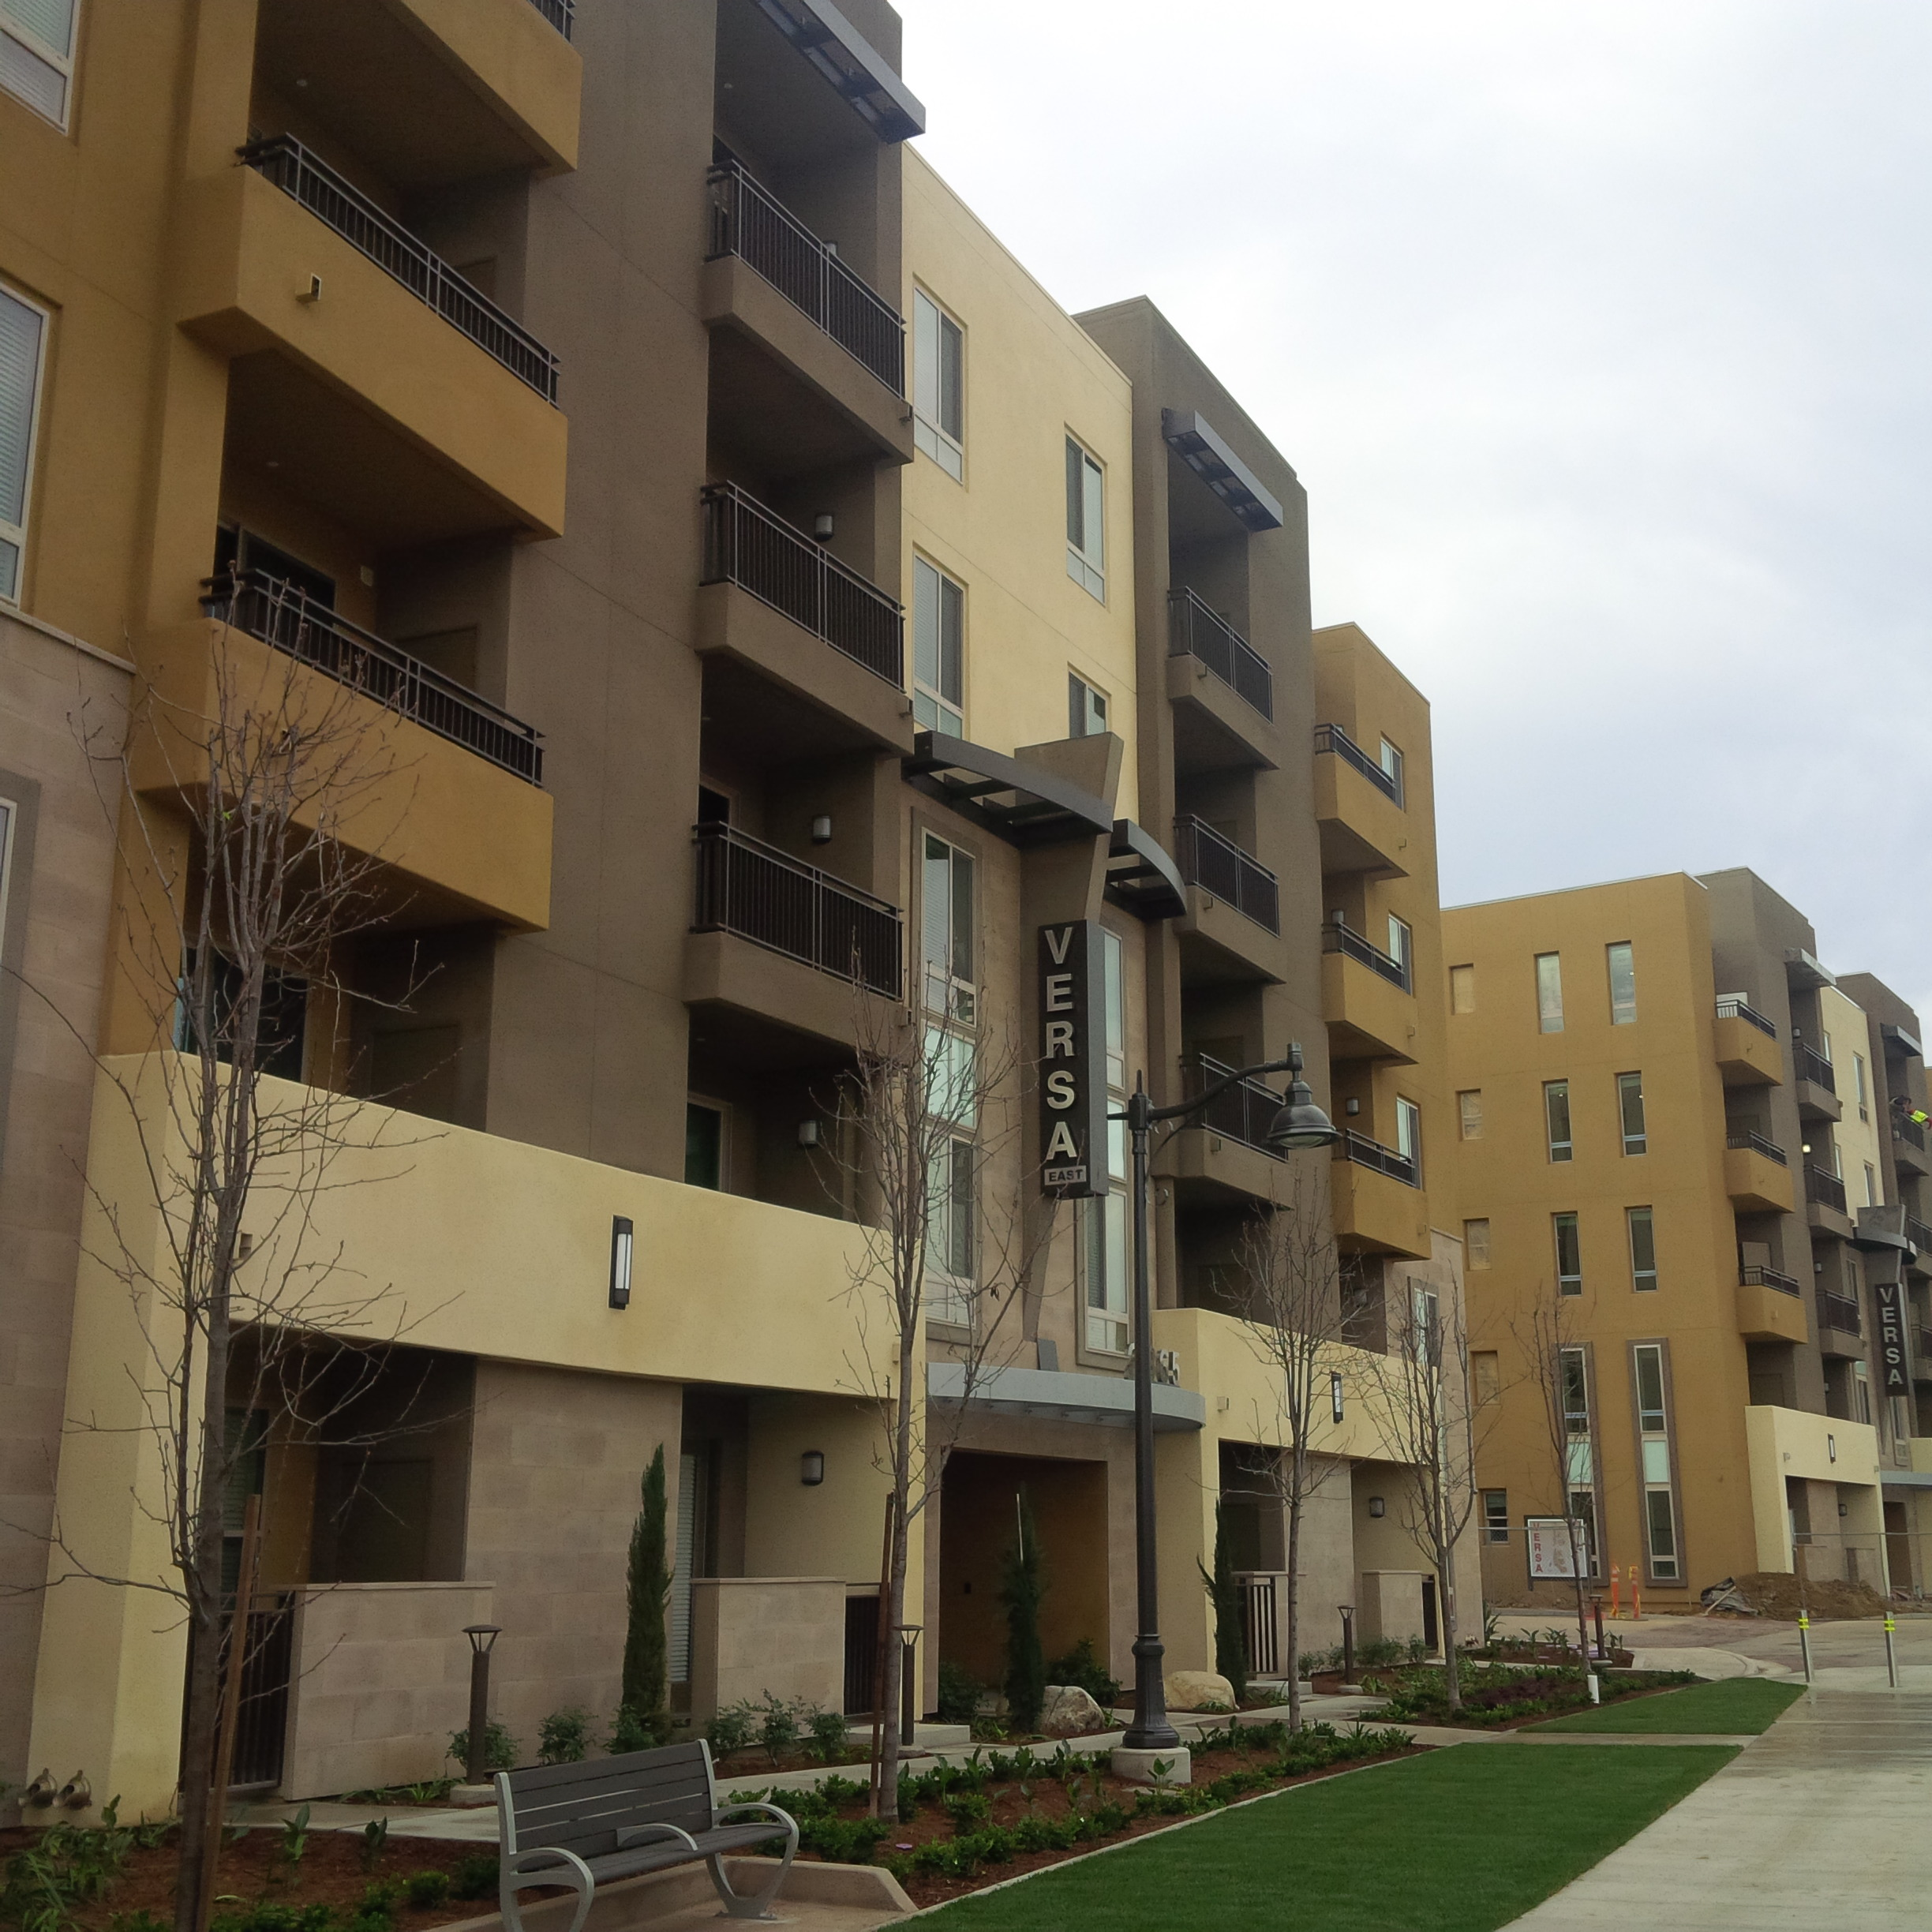 Apartments In Carlsbad Ca: Carlsbad Firm Opens New Senior Apartments In Mission